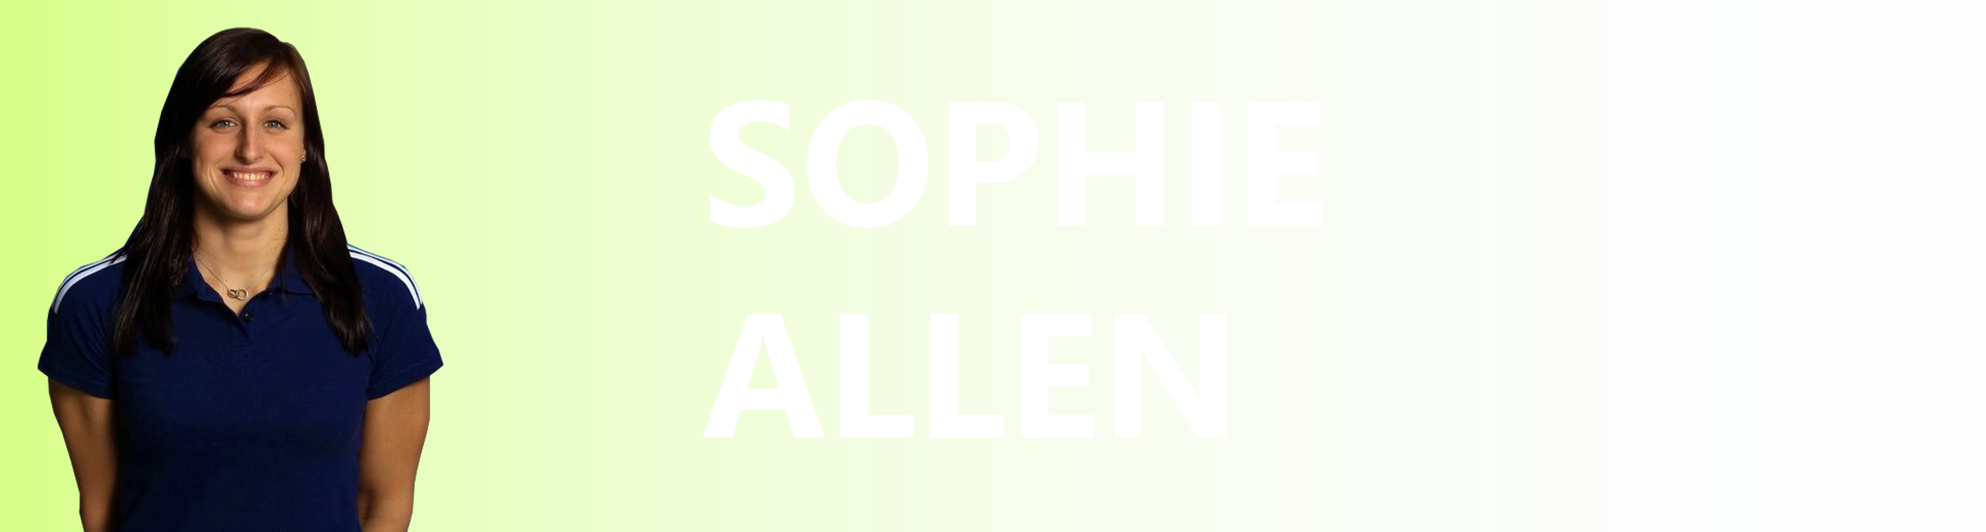 Sophie Allen SwimPath Team Profile Page